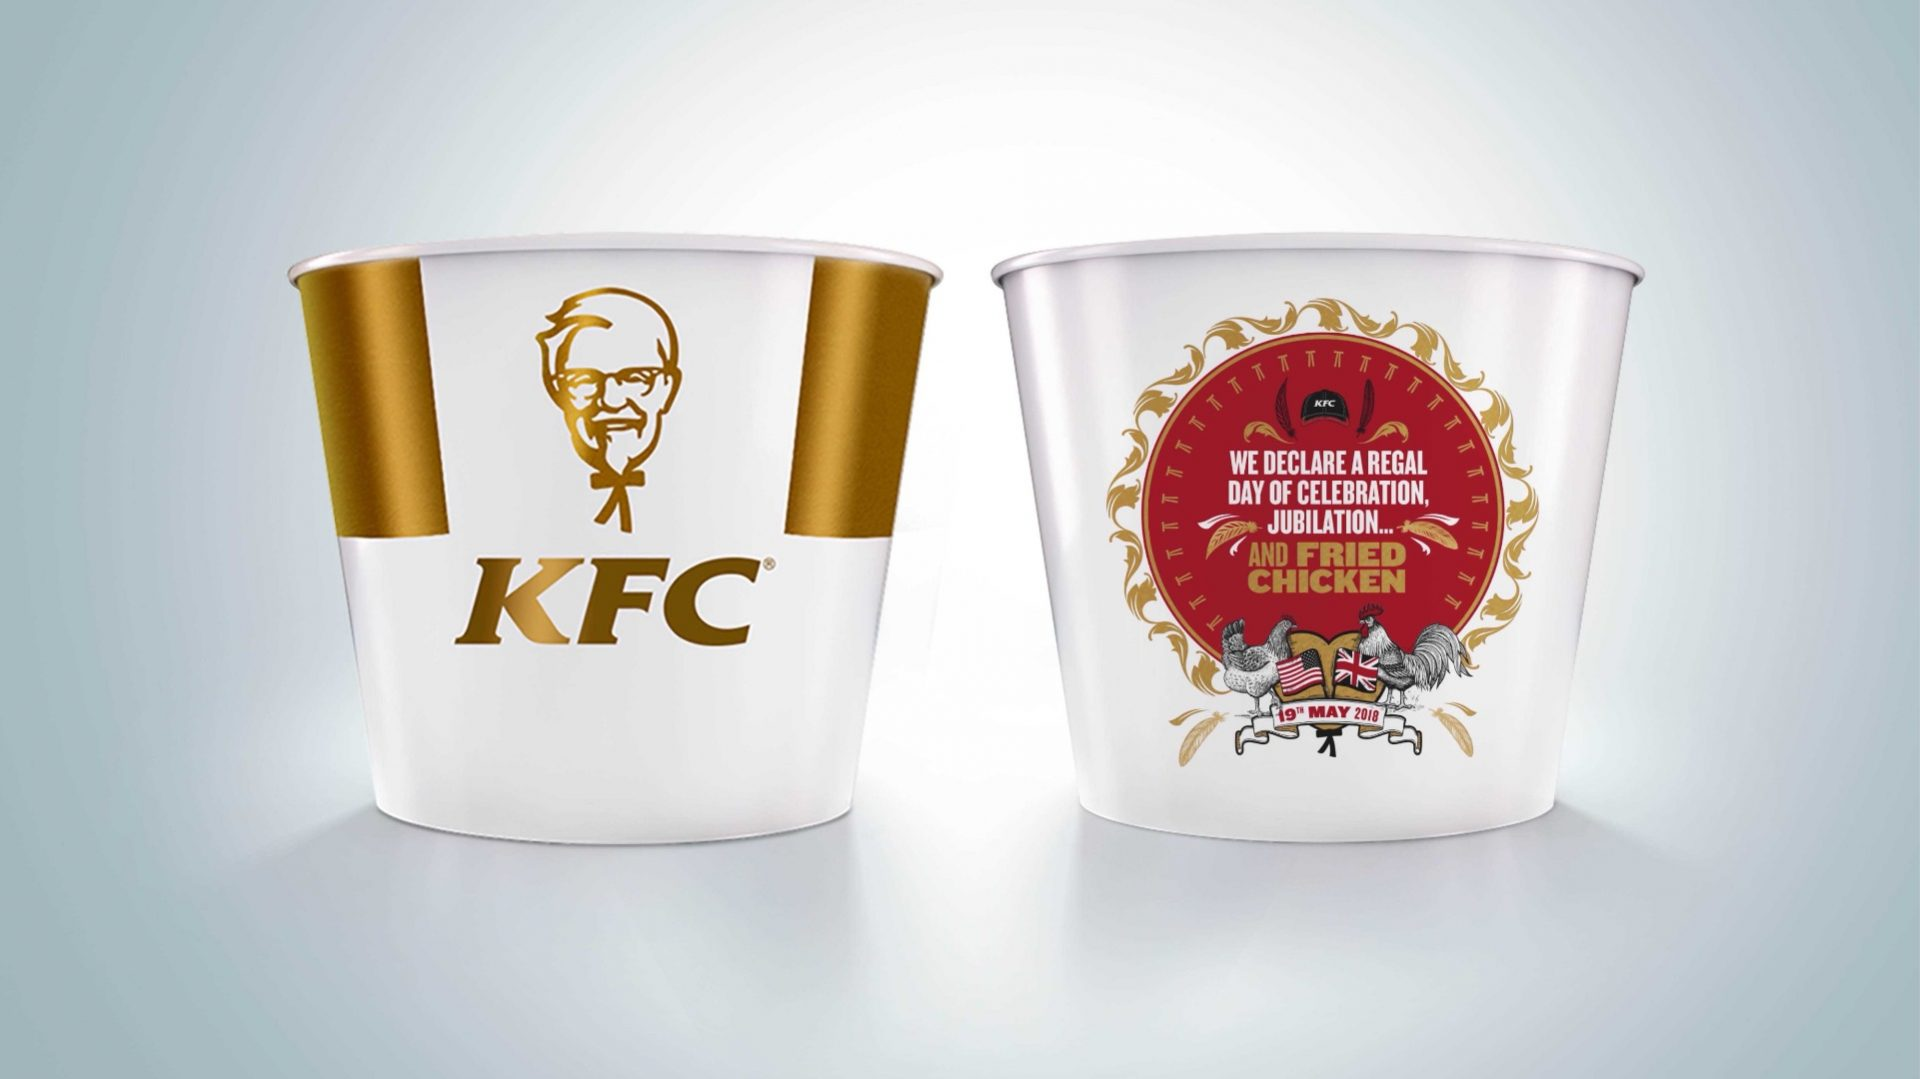 KFC launch a limited-edition ornately designed commemorative bucket to celebrate the Royal Wedding. Just 50 of the specially designed buckets are being created and will be available exclusively from KFC's Windsor restaurant on the wedding day itself.